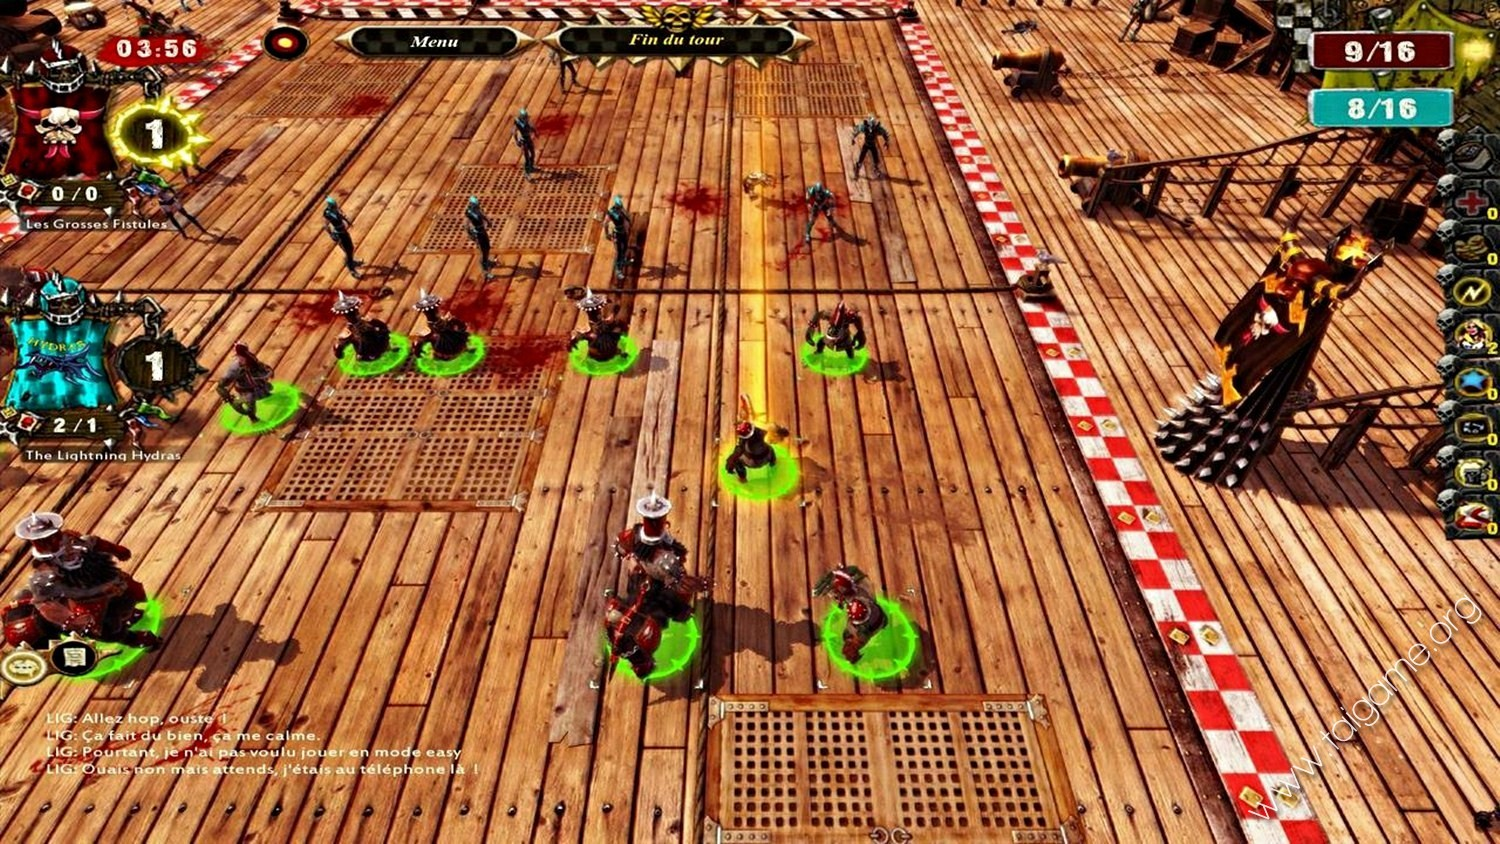 blood bowl online matchmaking Blitz bowl welcome sports fans whether you've just joined us from the minor leagues or already have a horde of championship trophies, here you'll find everything you need to compete in the newest season of blood bowl.